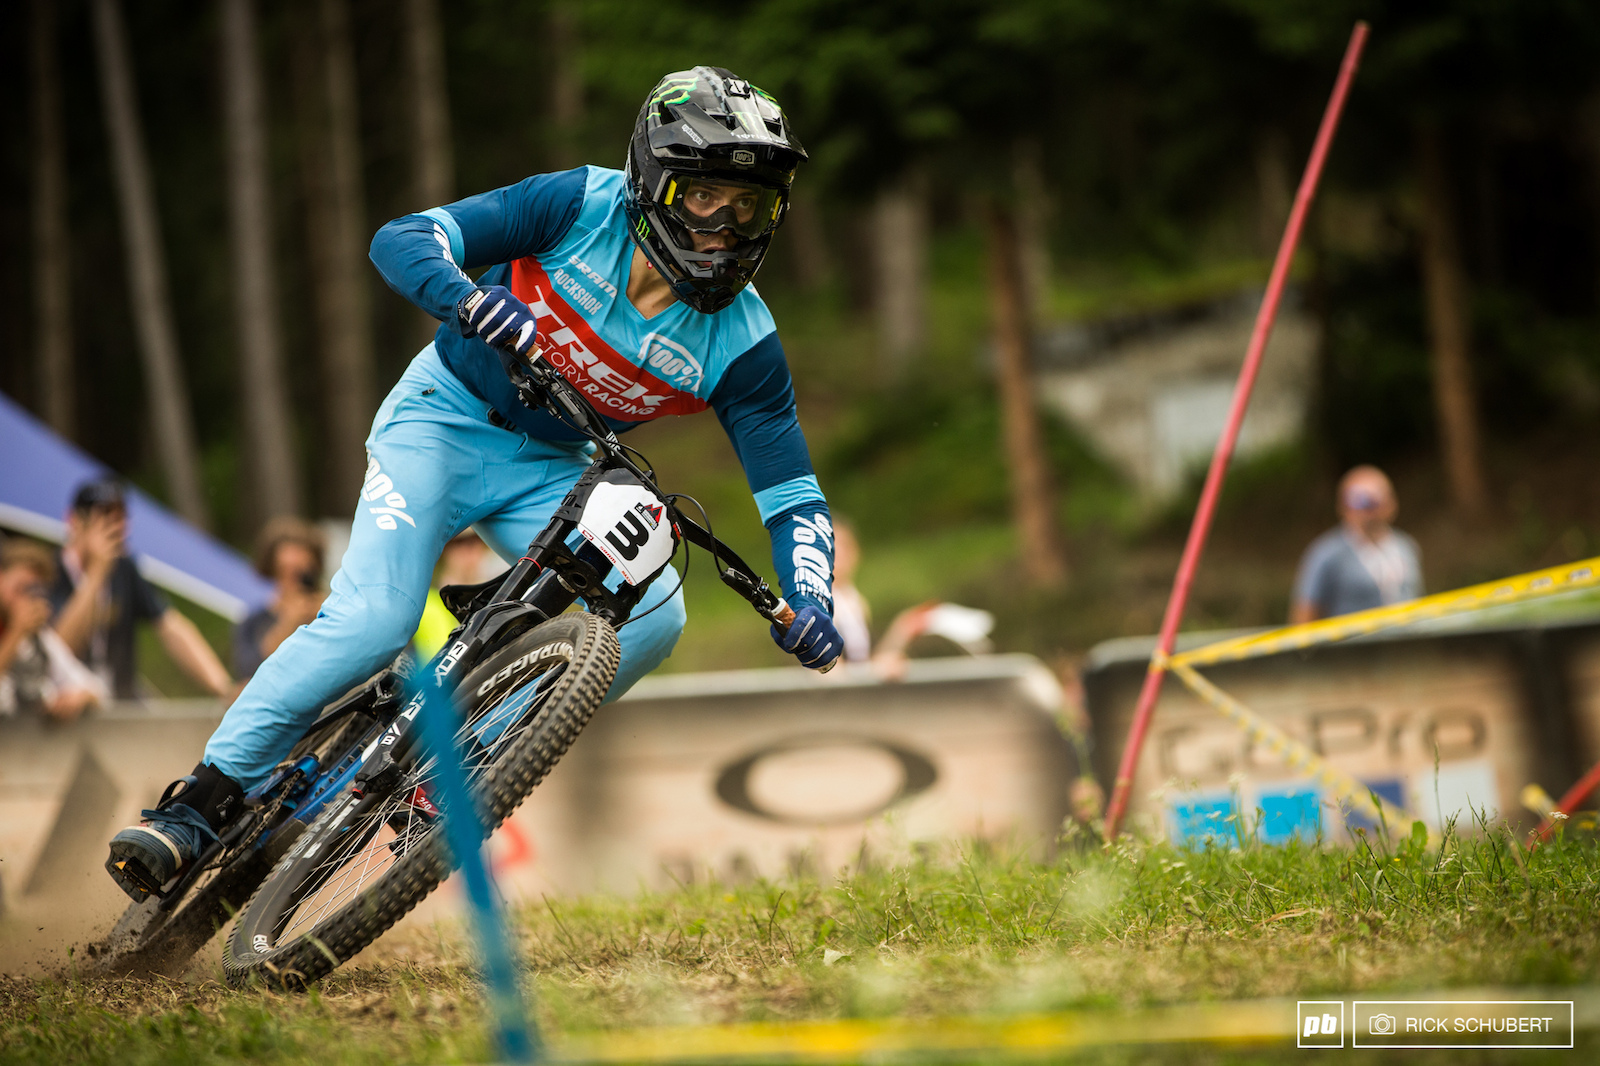 Vergier raced hard and took the win. We can t wait to see how this season evolves.